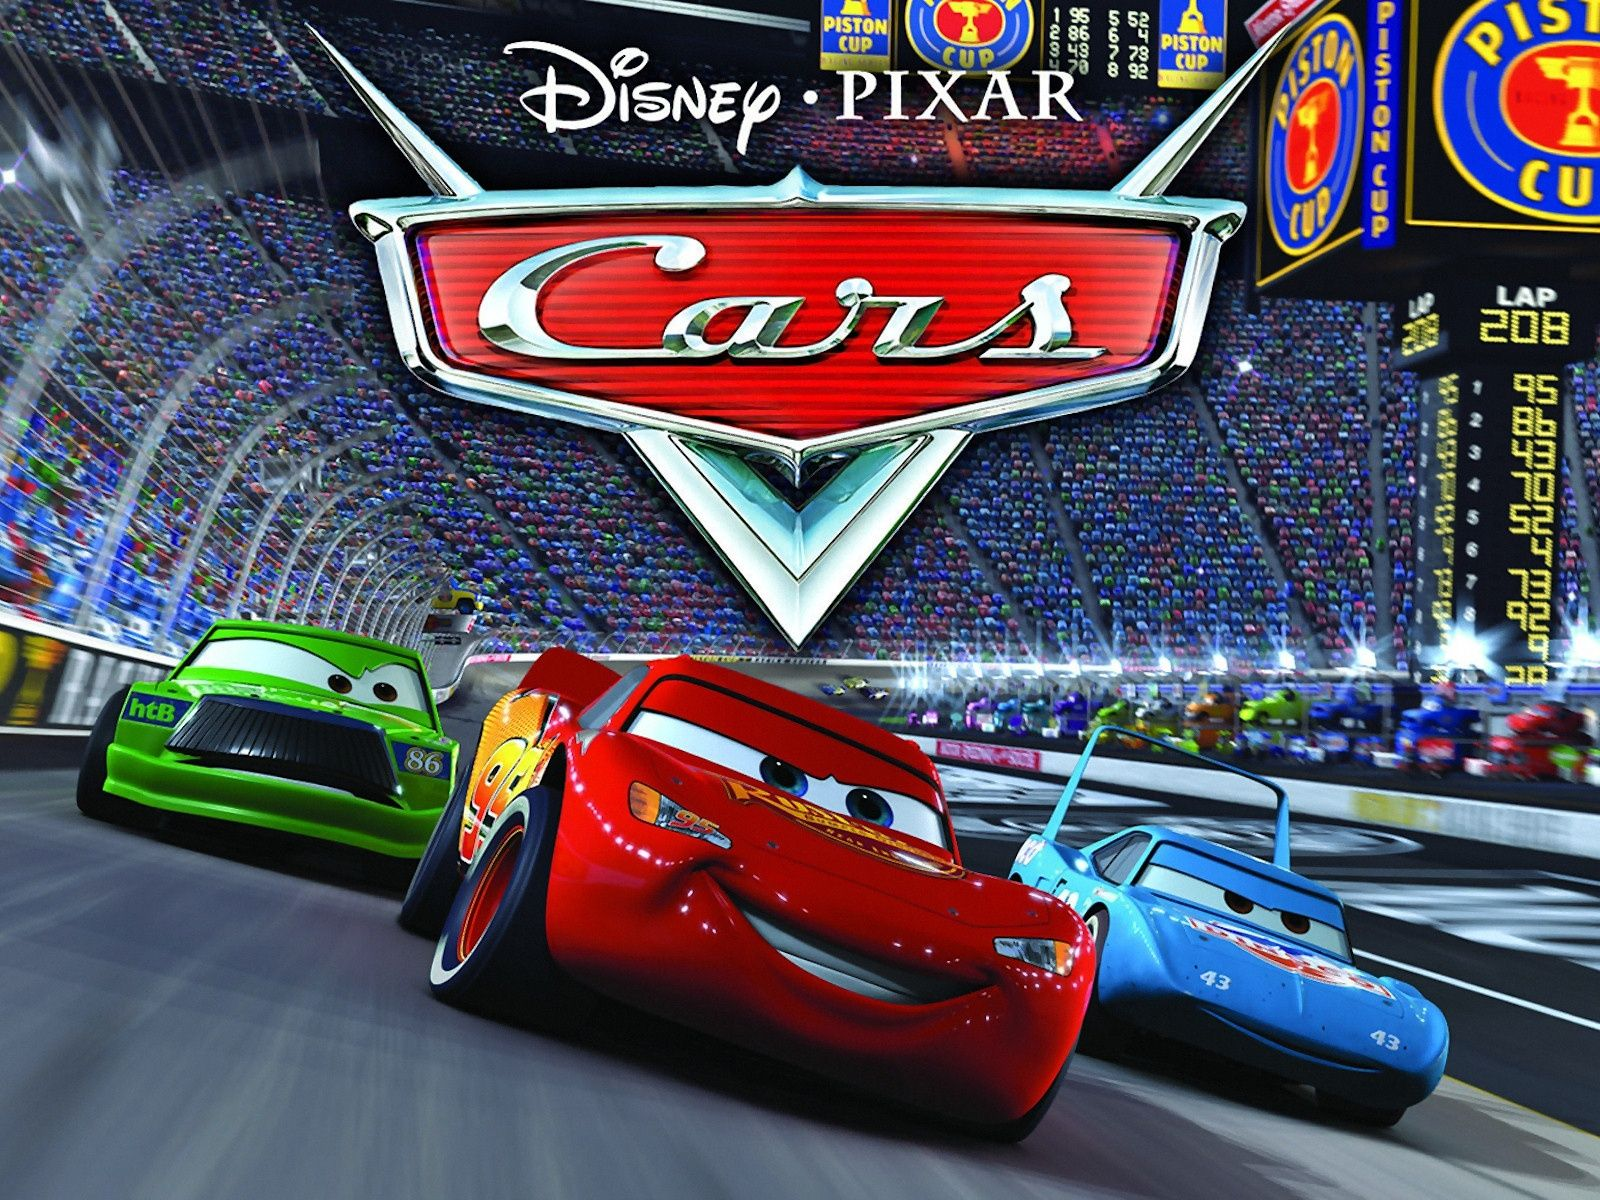 Cars Pixar Wallpaper Wallnen Hd Wallpapers Indiwa Indiwacars Mater Poster Characters Disney Backgroundscars 1600x1 Disney Cars Wallpaper Disney Cars Cars Movie